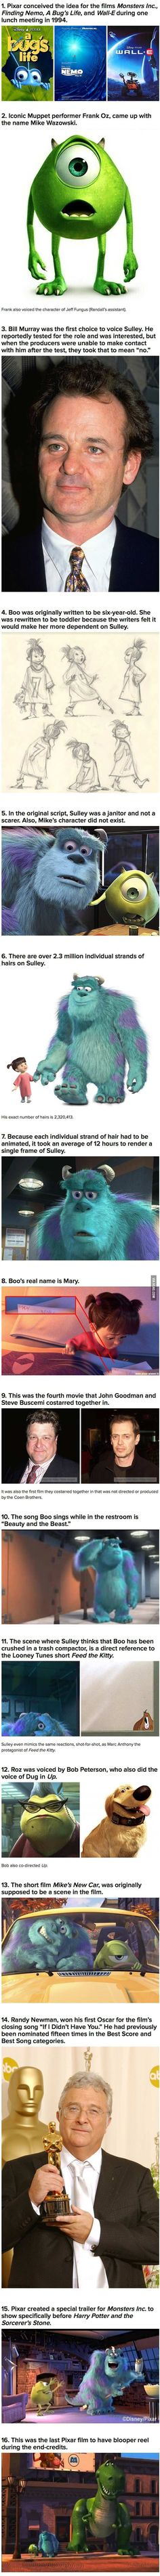 monsters inc - I can't get over boo's song. AAAHHH what is it?!?!?<---- I LOVE MONSTERS INC.!